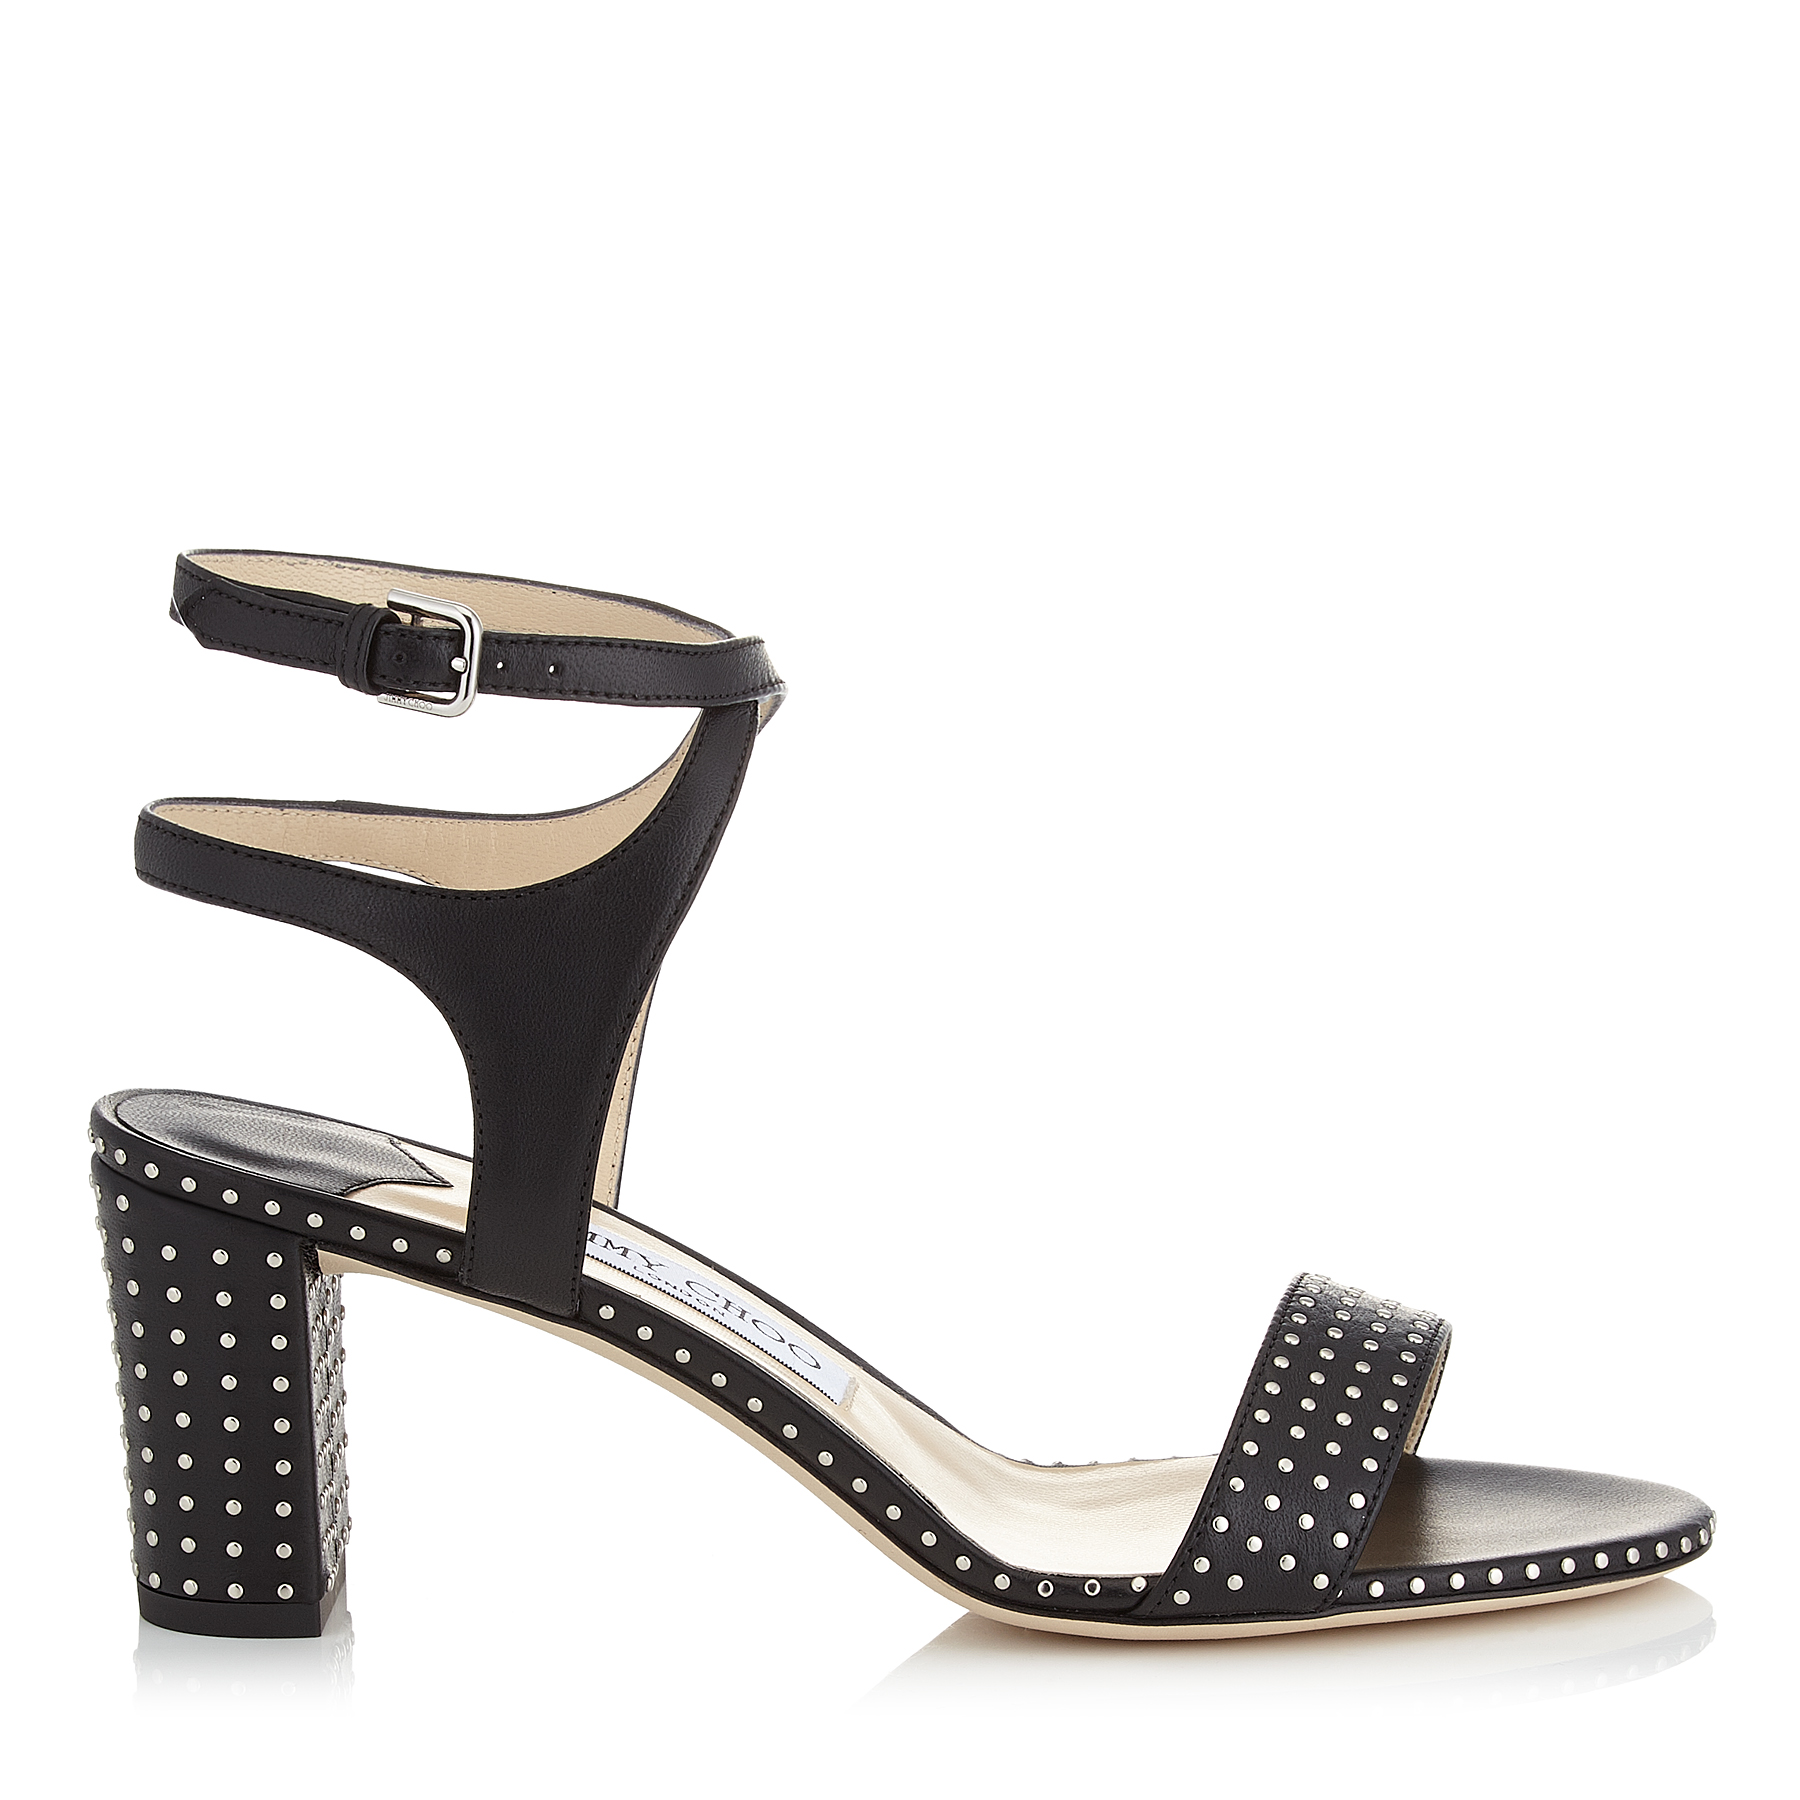 MARINE 65 Black Nappa Leather Sandals with Silver Micro Studs by Jimmy Choo